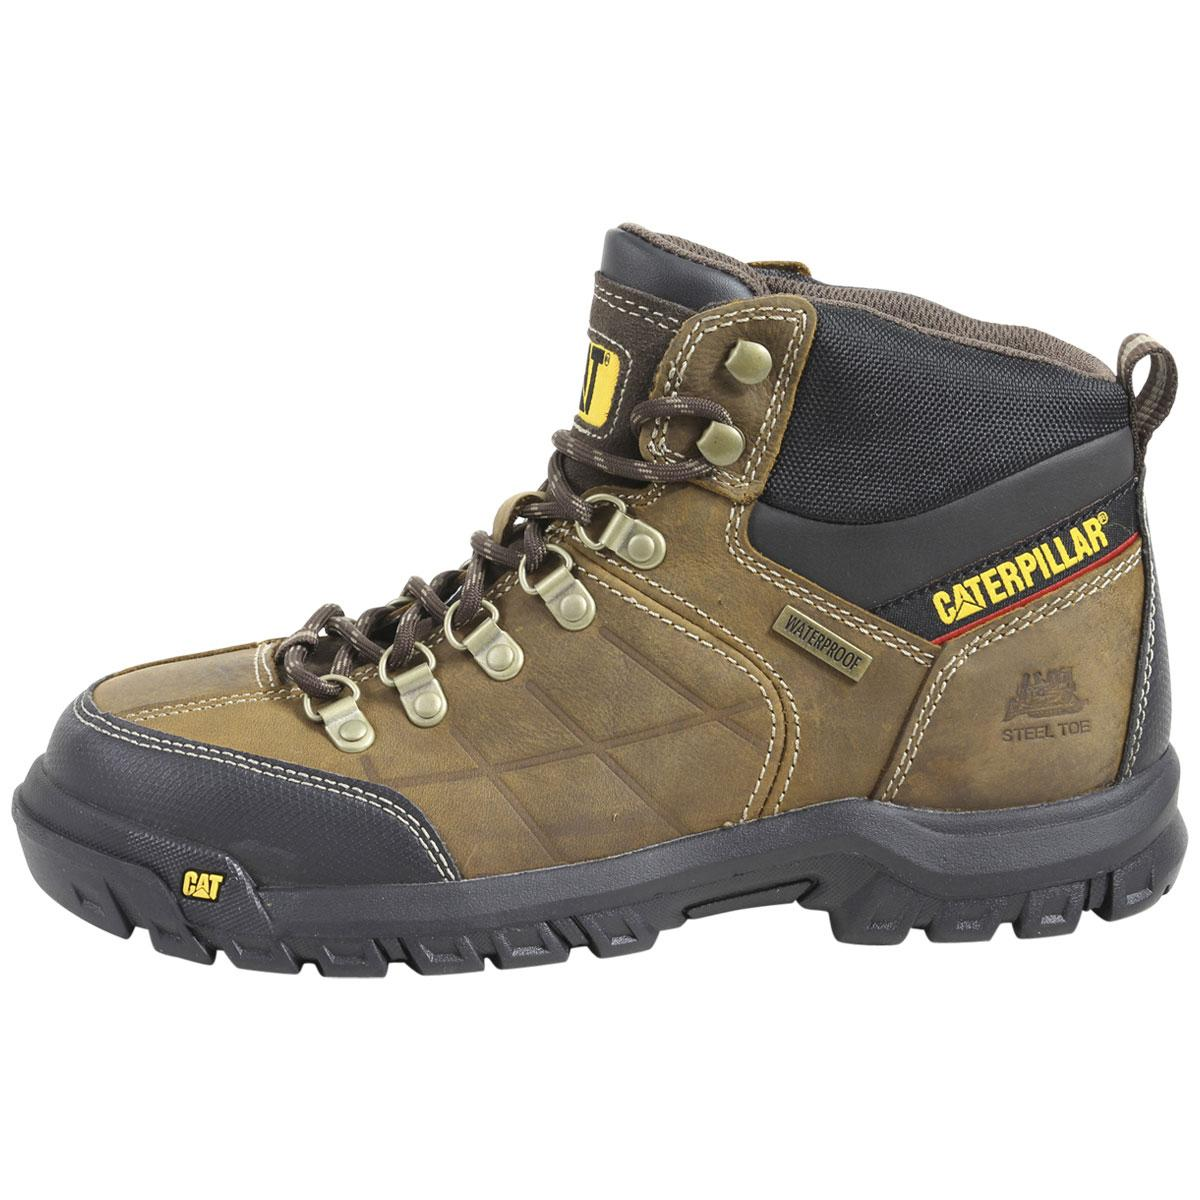 Caterpillar Mens Threshold Waterproof Steel Toe Work Boots Shoes D Island Hikers Fashionable Brown By 1234567